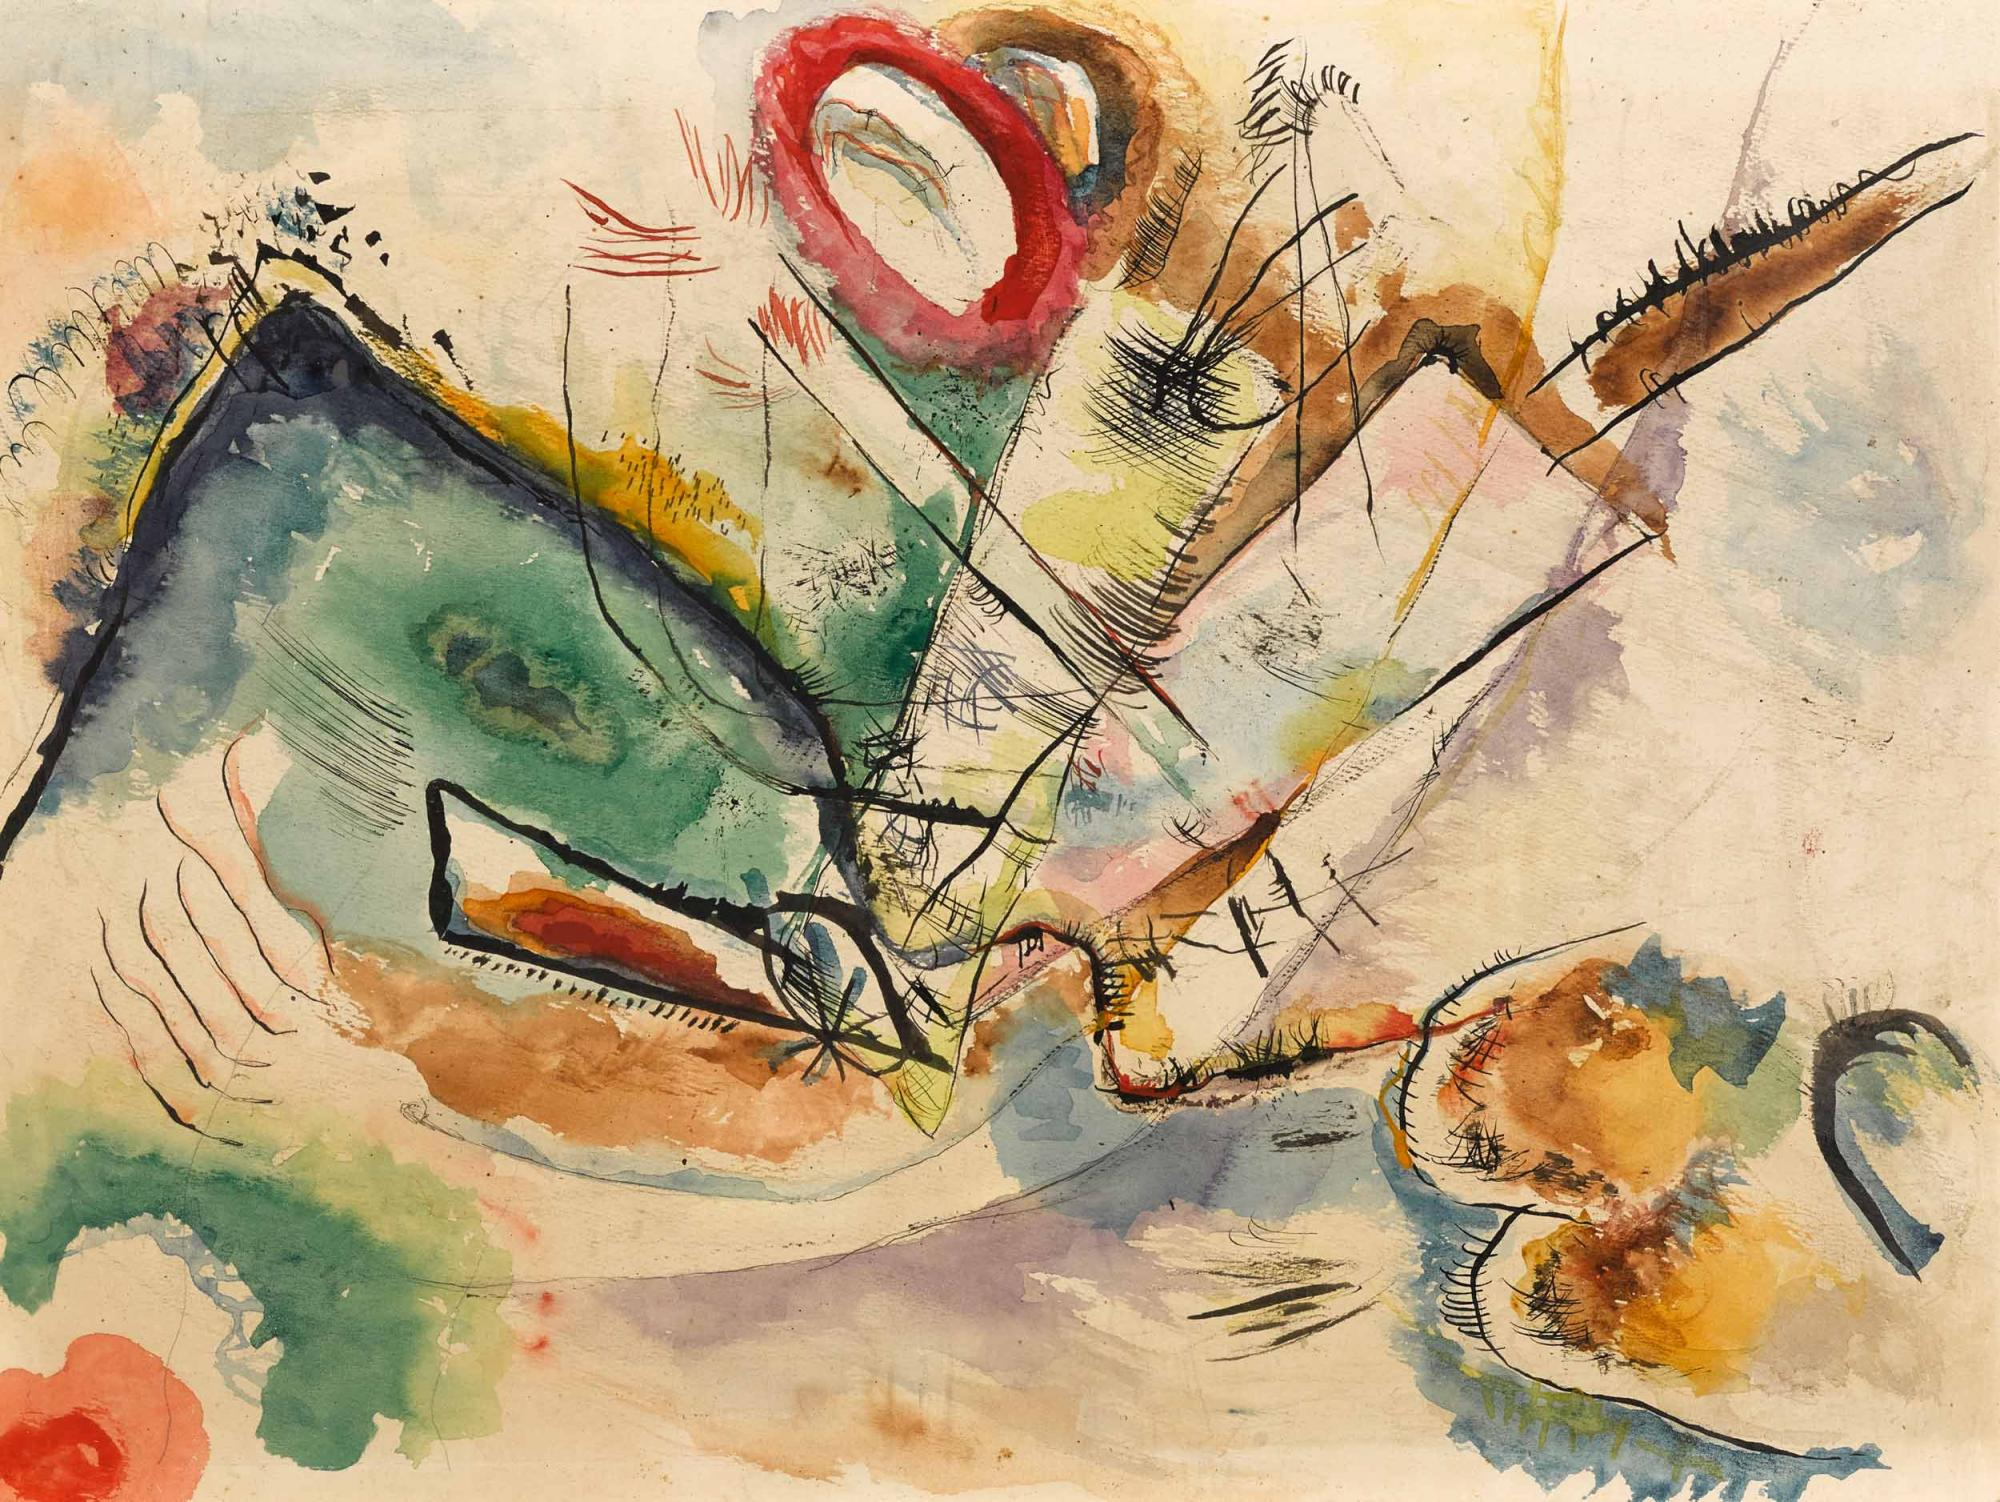 Lot-8-Wassily-Kandinsky-Ohne-Titel-Komposition-Untitled-Composition-est.jpg